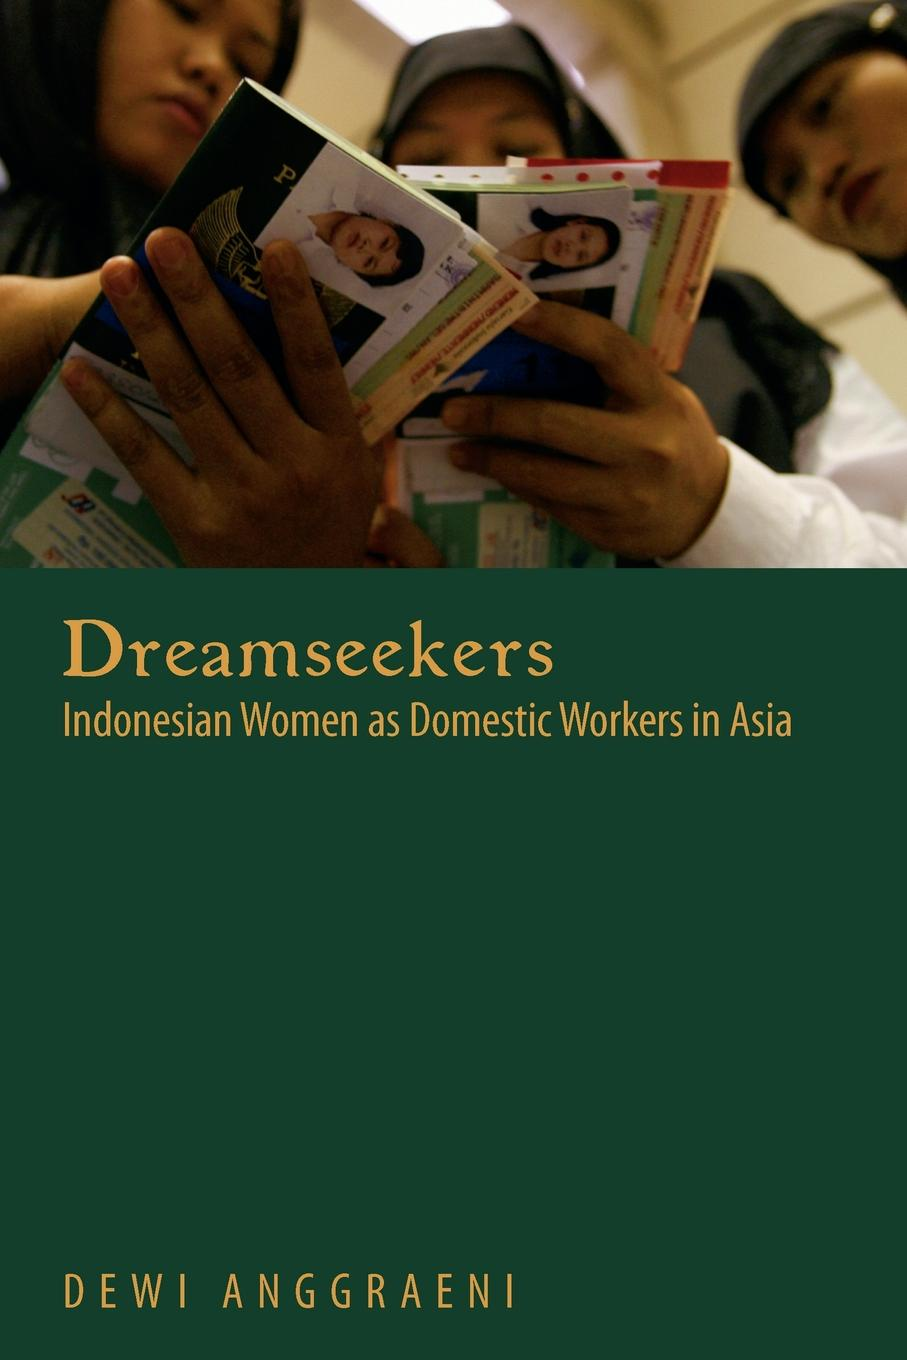 Dewi Anggraeni Dreamseekers. Indonesian Women as Domestic Workers in Asia campbell helen prisoners of poverty women wage workers their trades and their lives